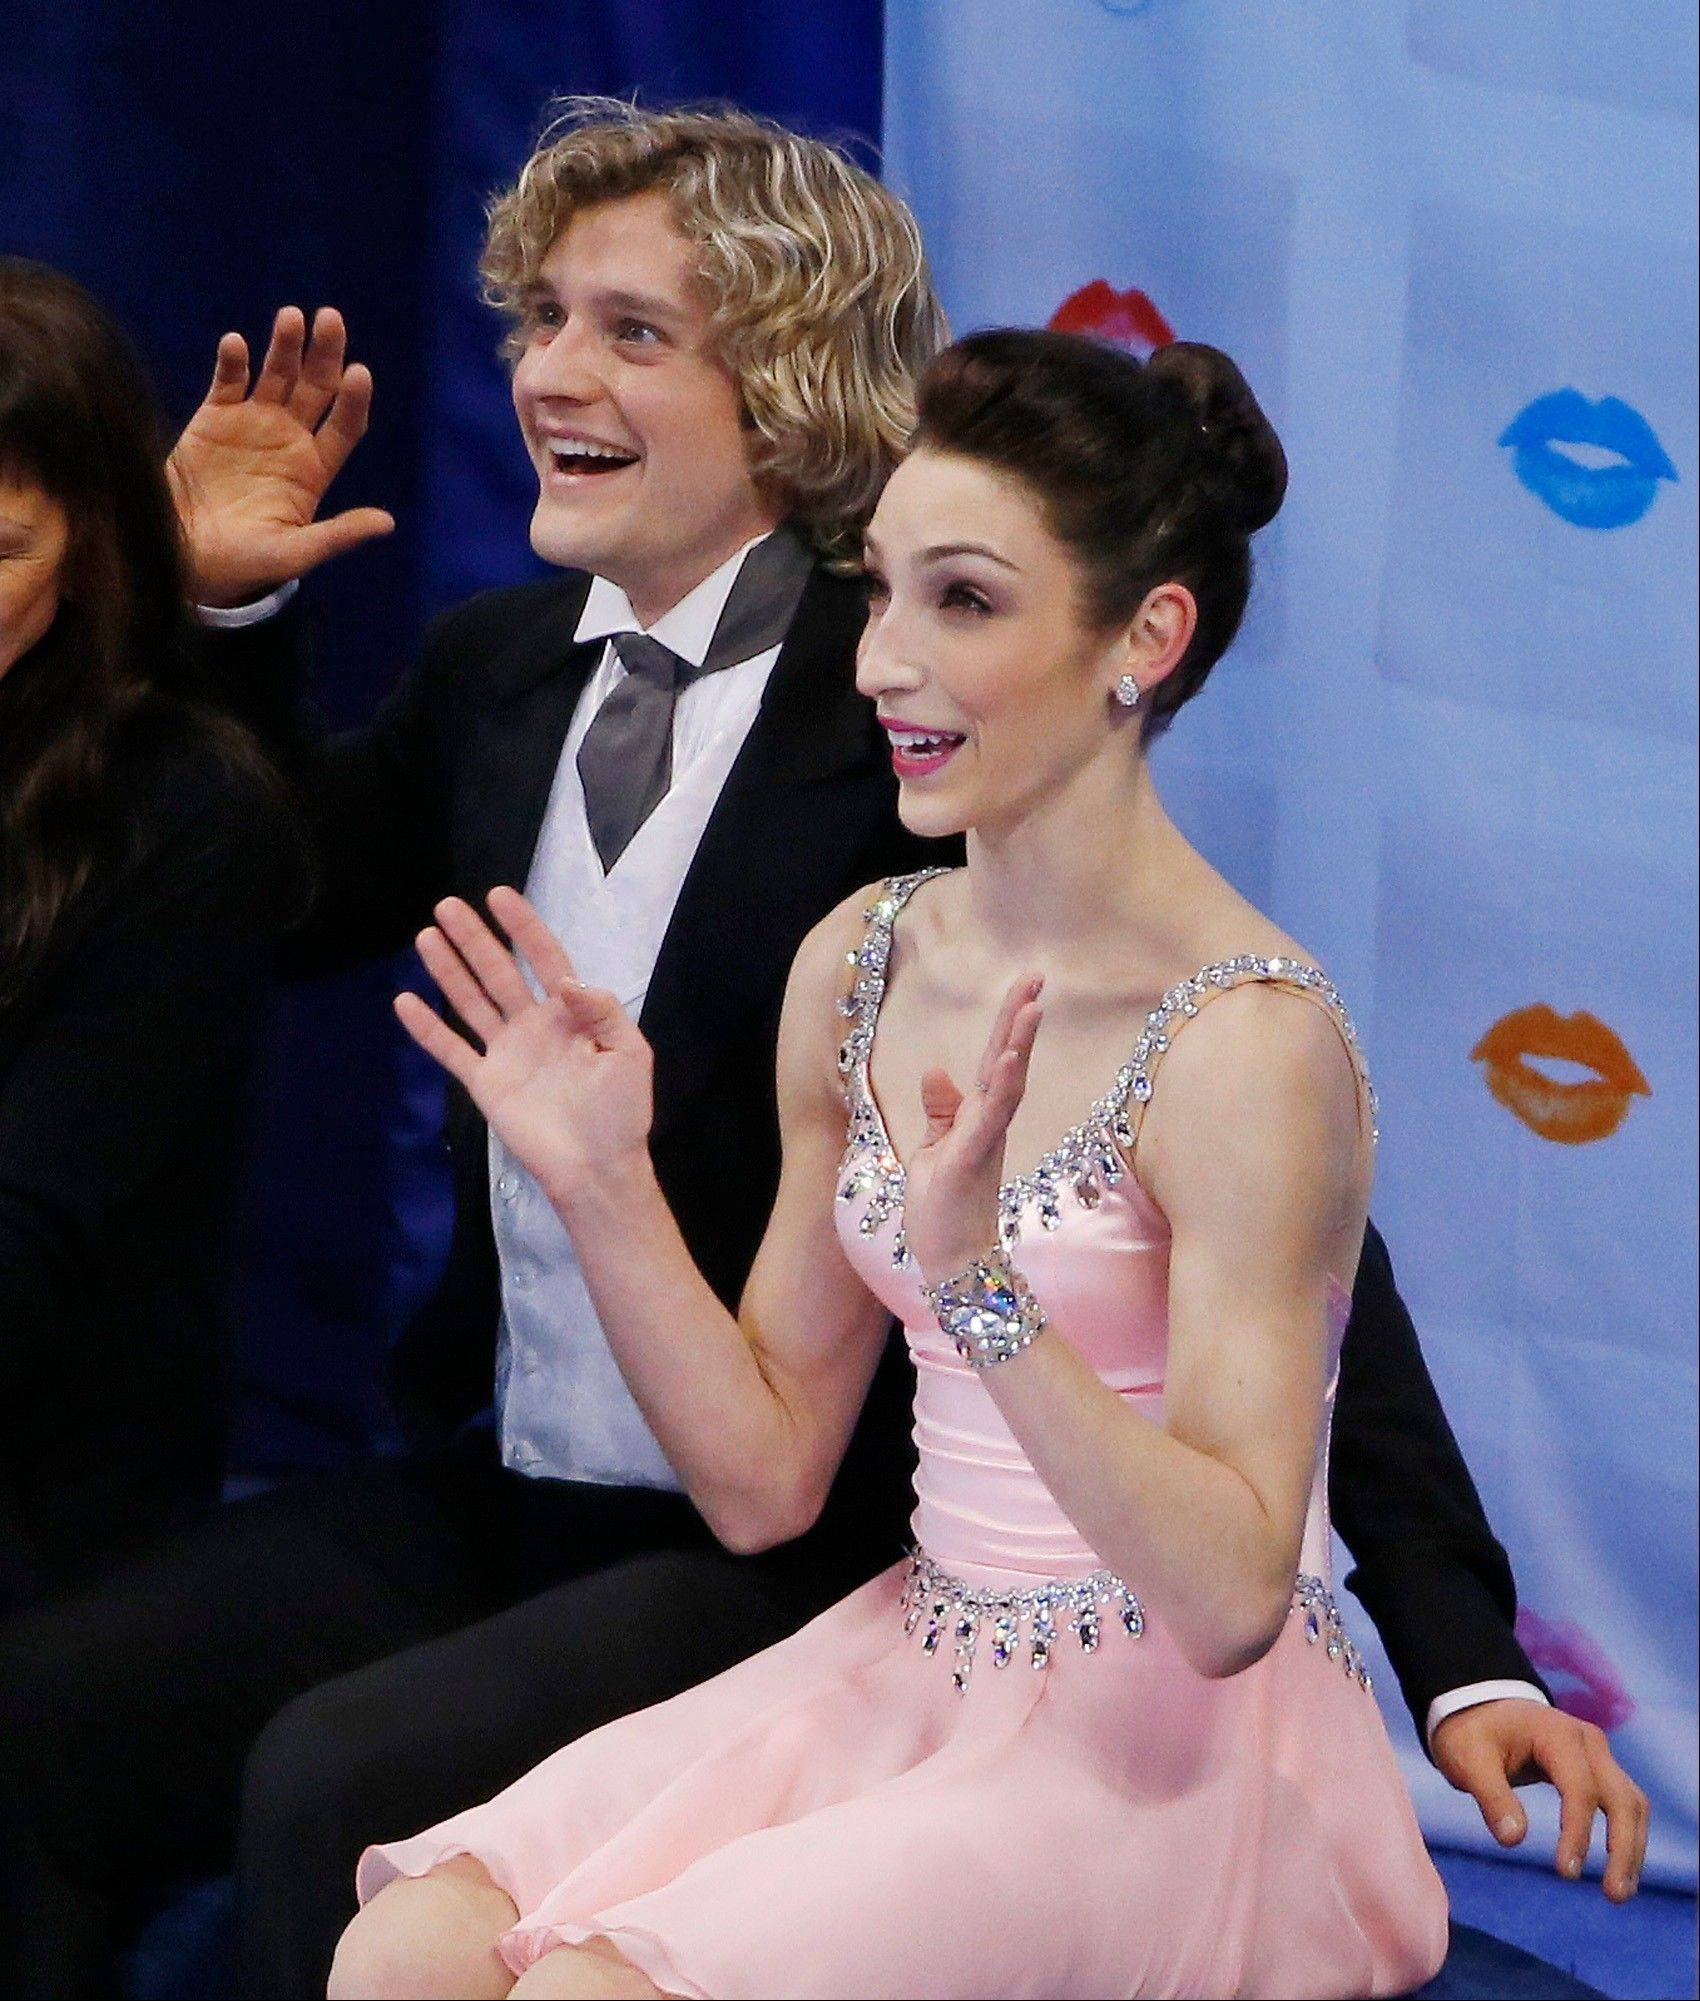 Ice dancers Meryl Davis and Charlie White react as the scores are posted Friday for their short program at the U.S. Figure Skating Championships in Boston.